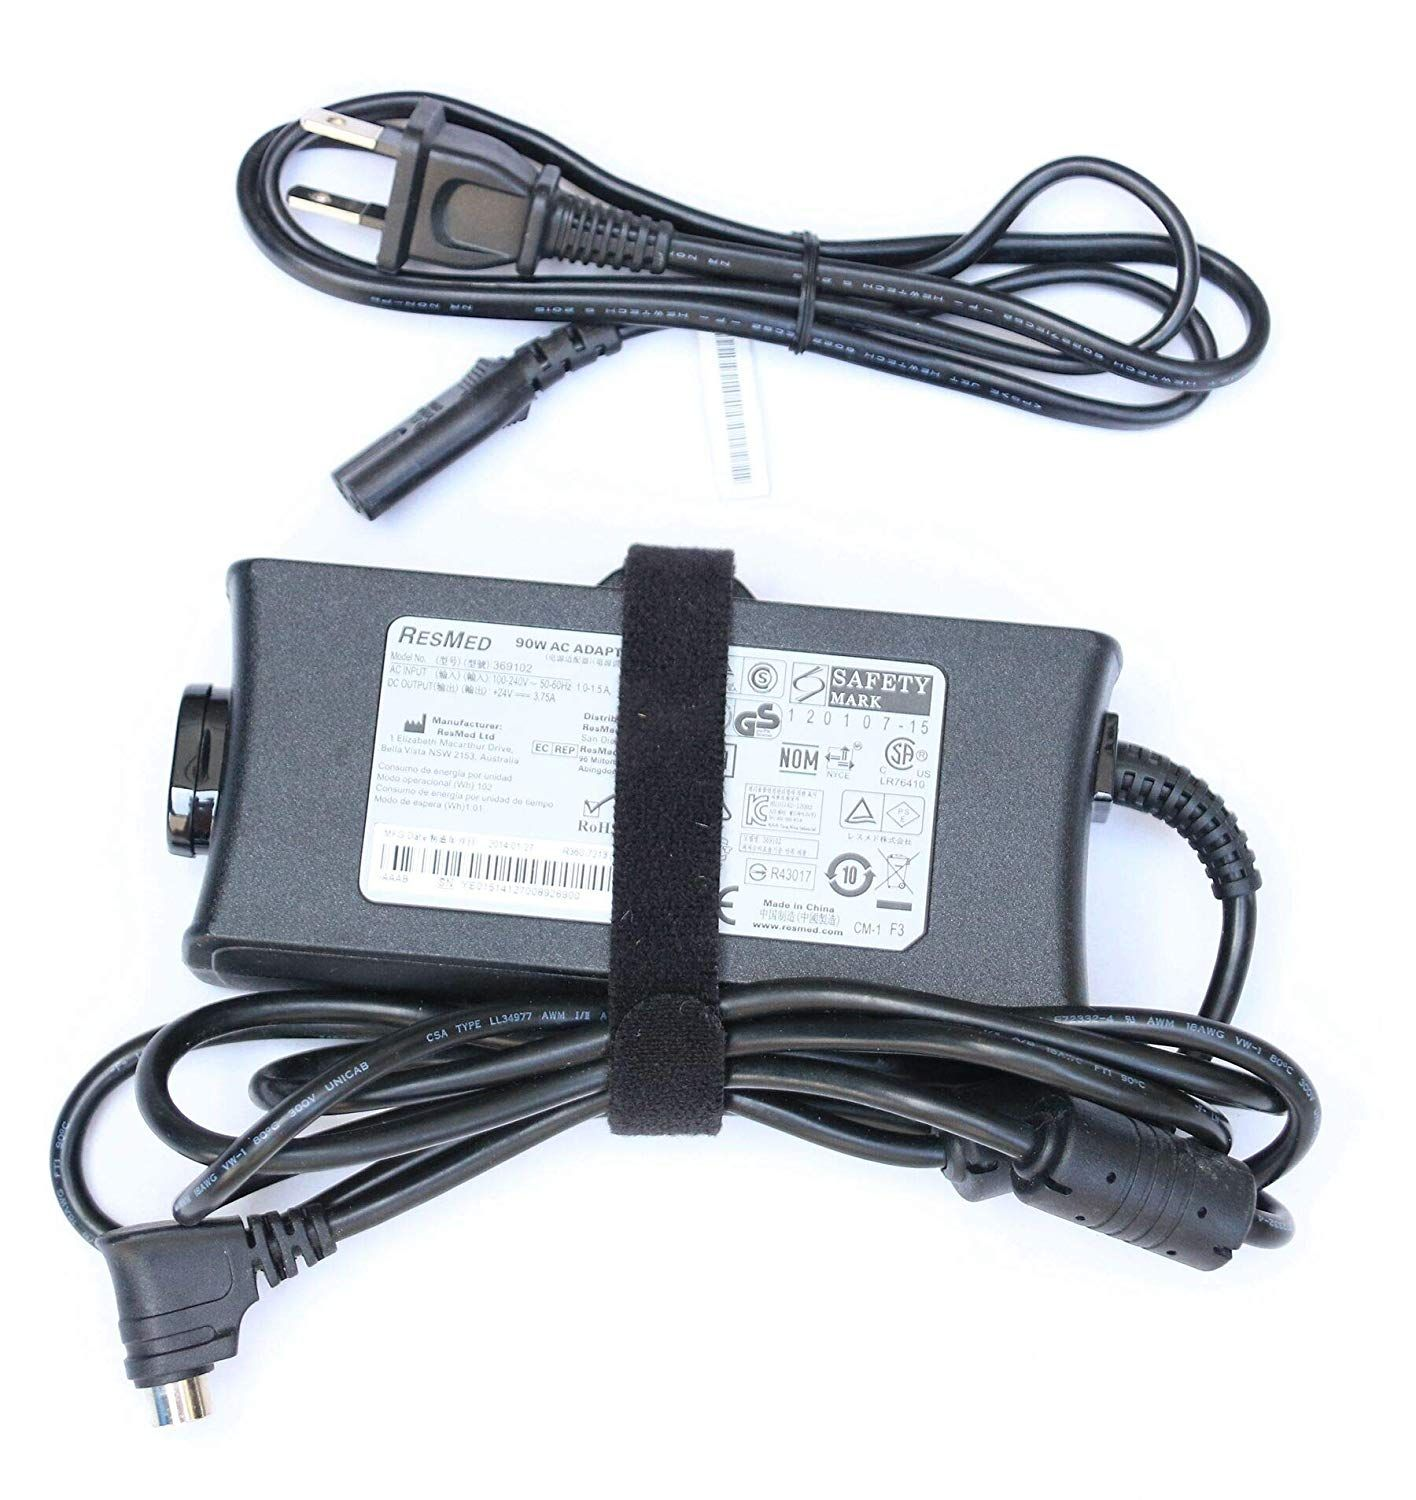 Resmed R360 760 Da 90a24 Cpap 36970 S9 Elite Machine S9 Escape Machines 3 Pin Din Power Adapters Resmed Acdc